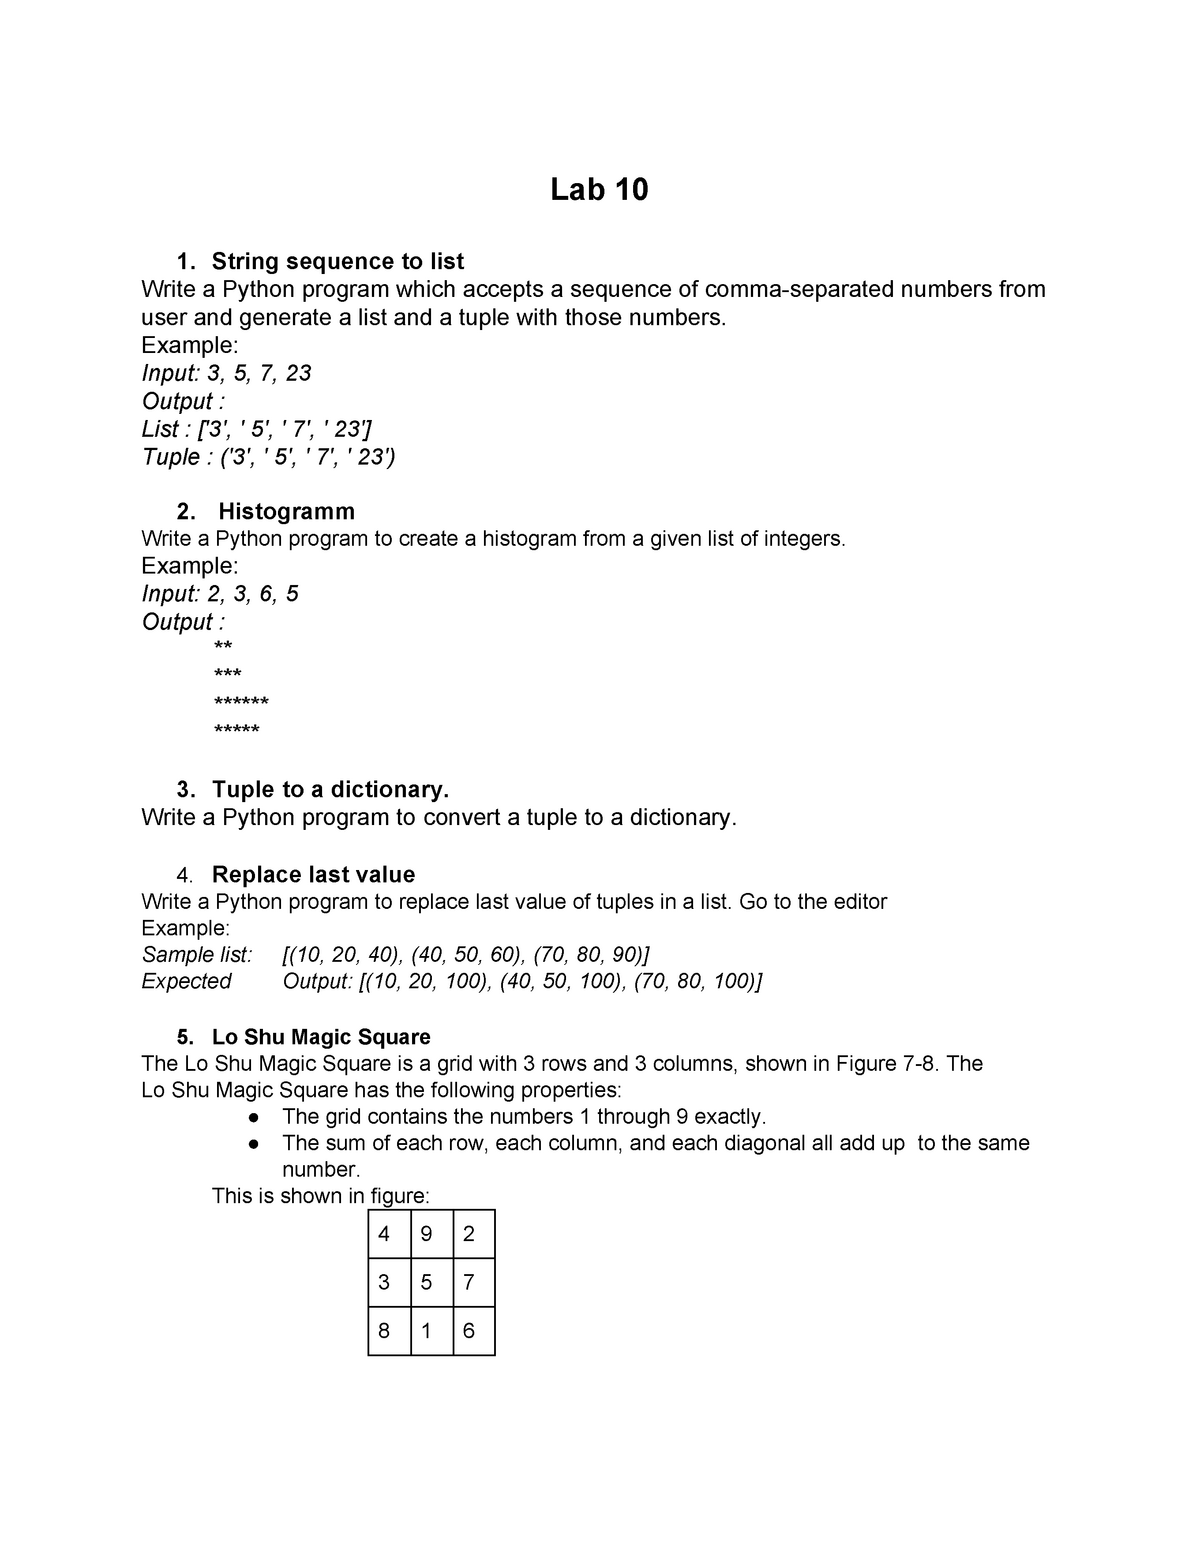 Lab 10 Week 11 - This is the Tutorial Sheet for the tenth